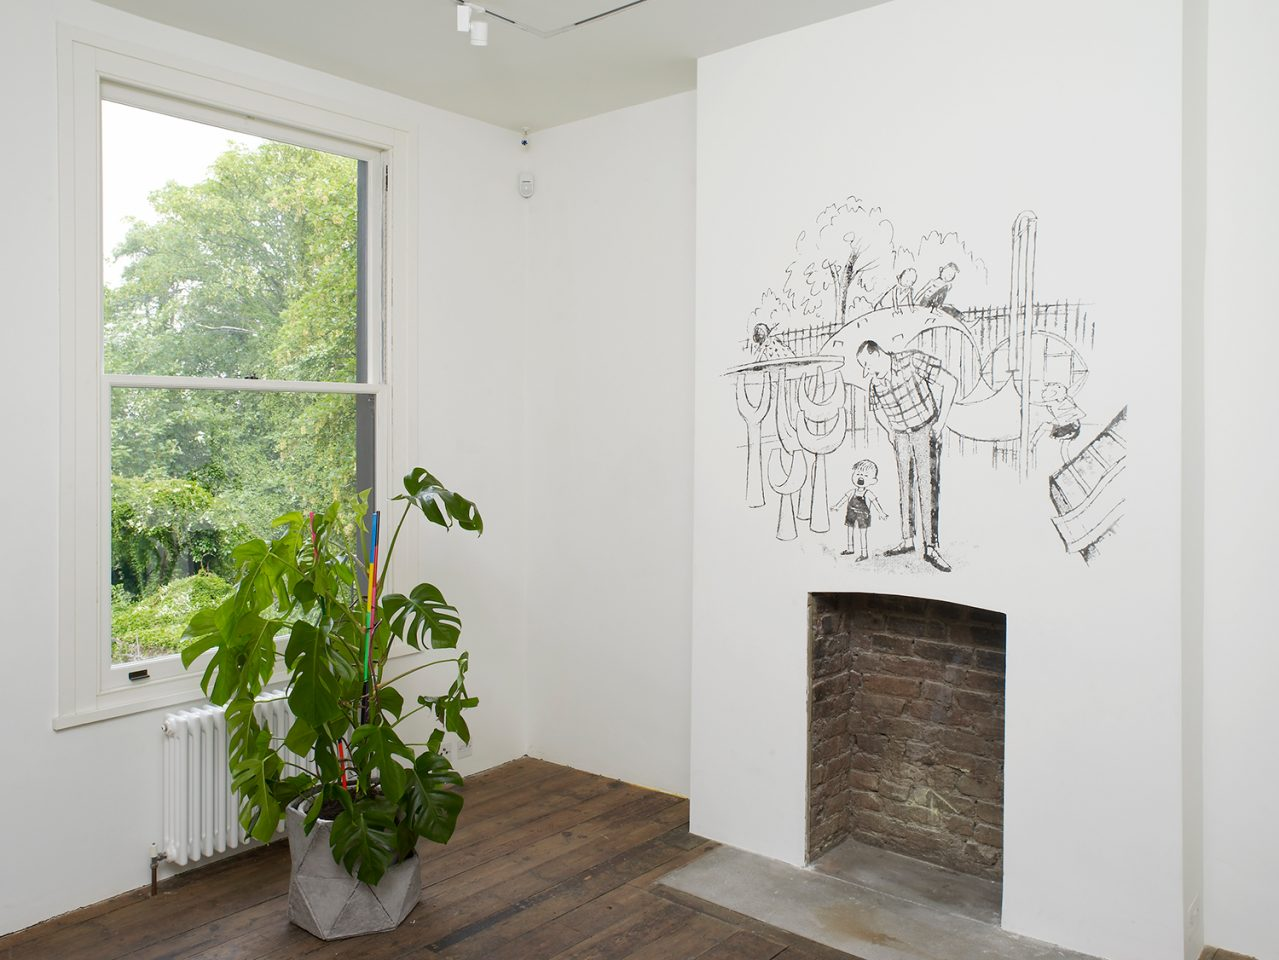 Installation view from Simon & Tom Bloor's 2011 exhibition Happy Habitat Revisited. Photo: Andy Keate